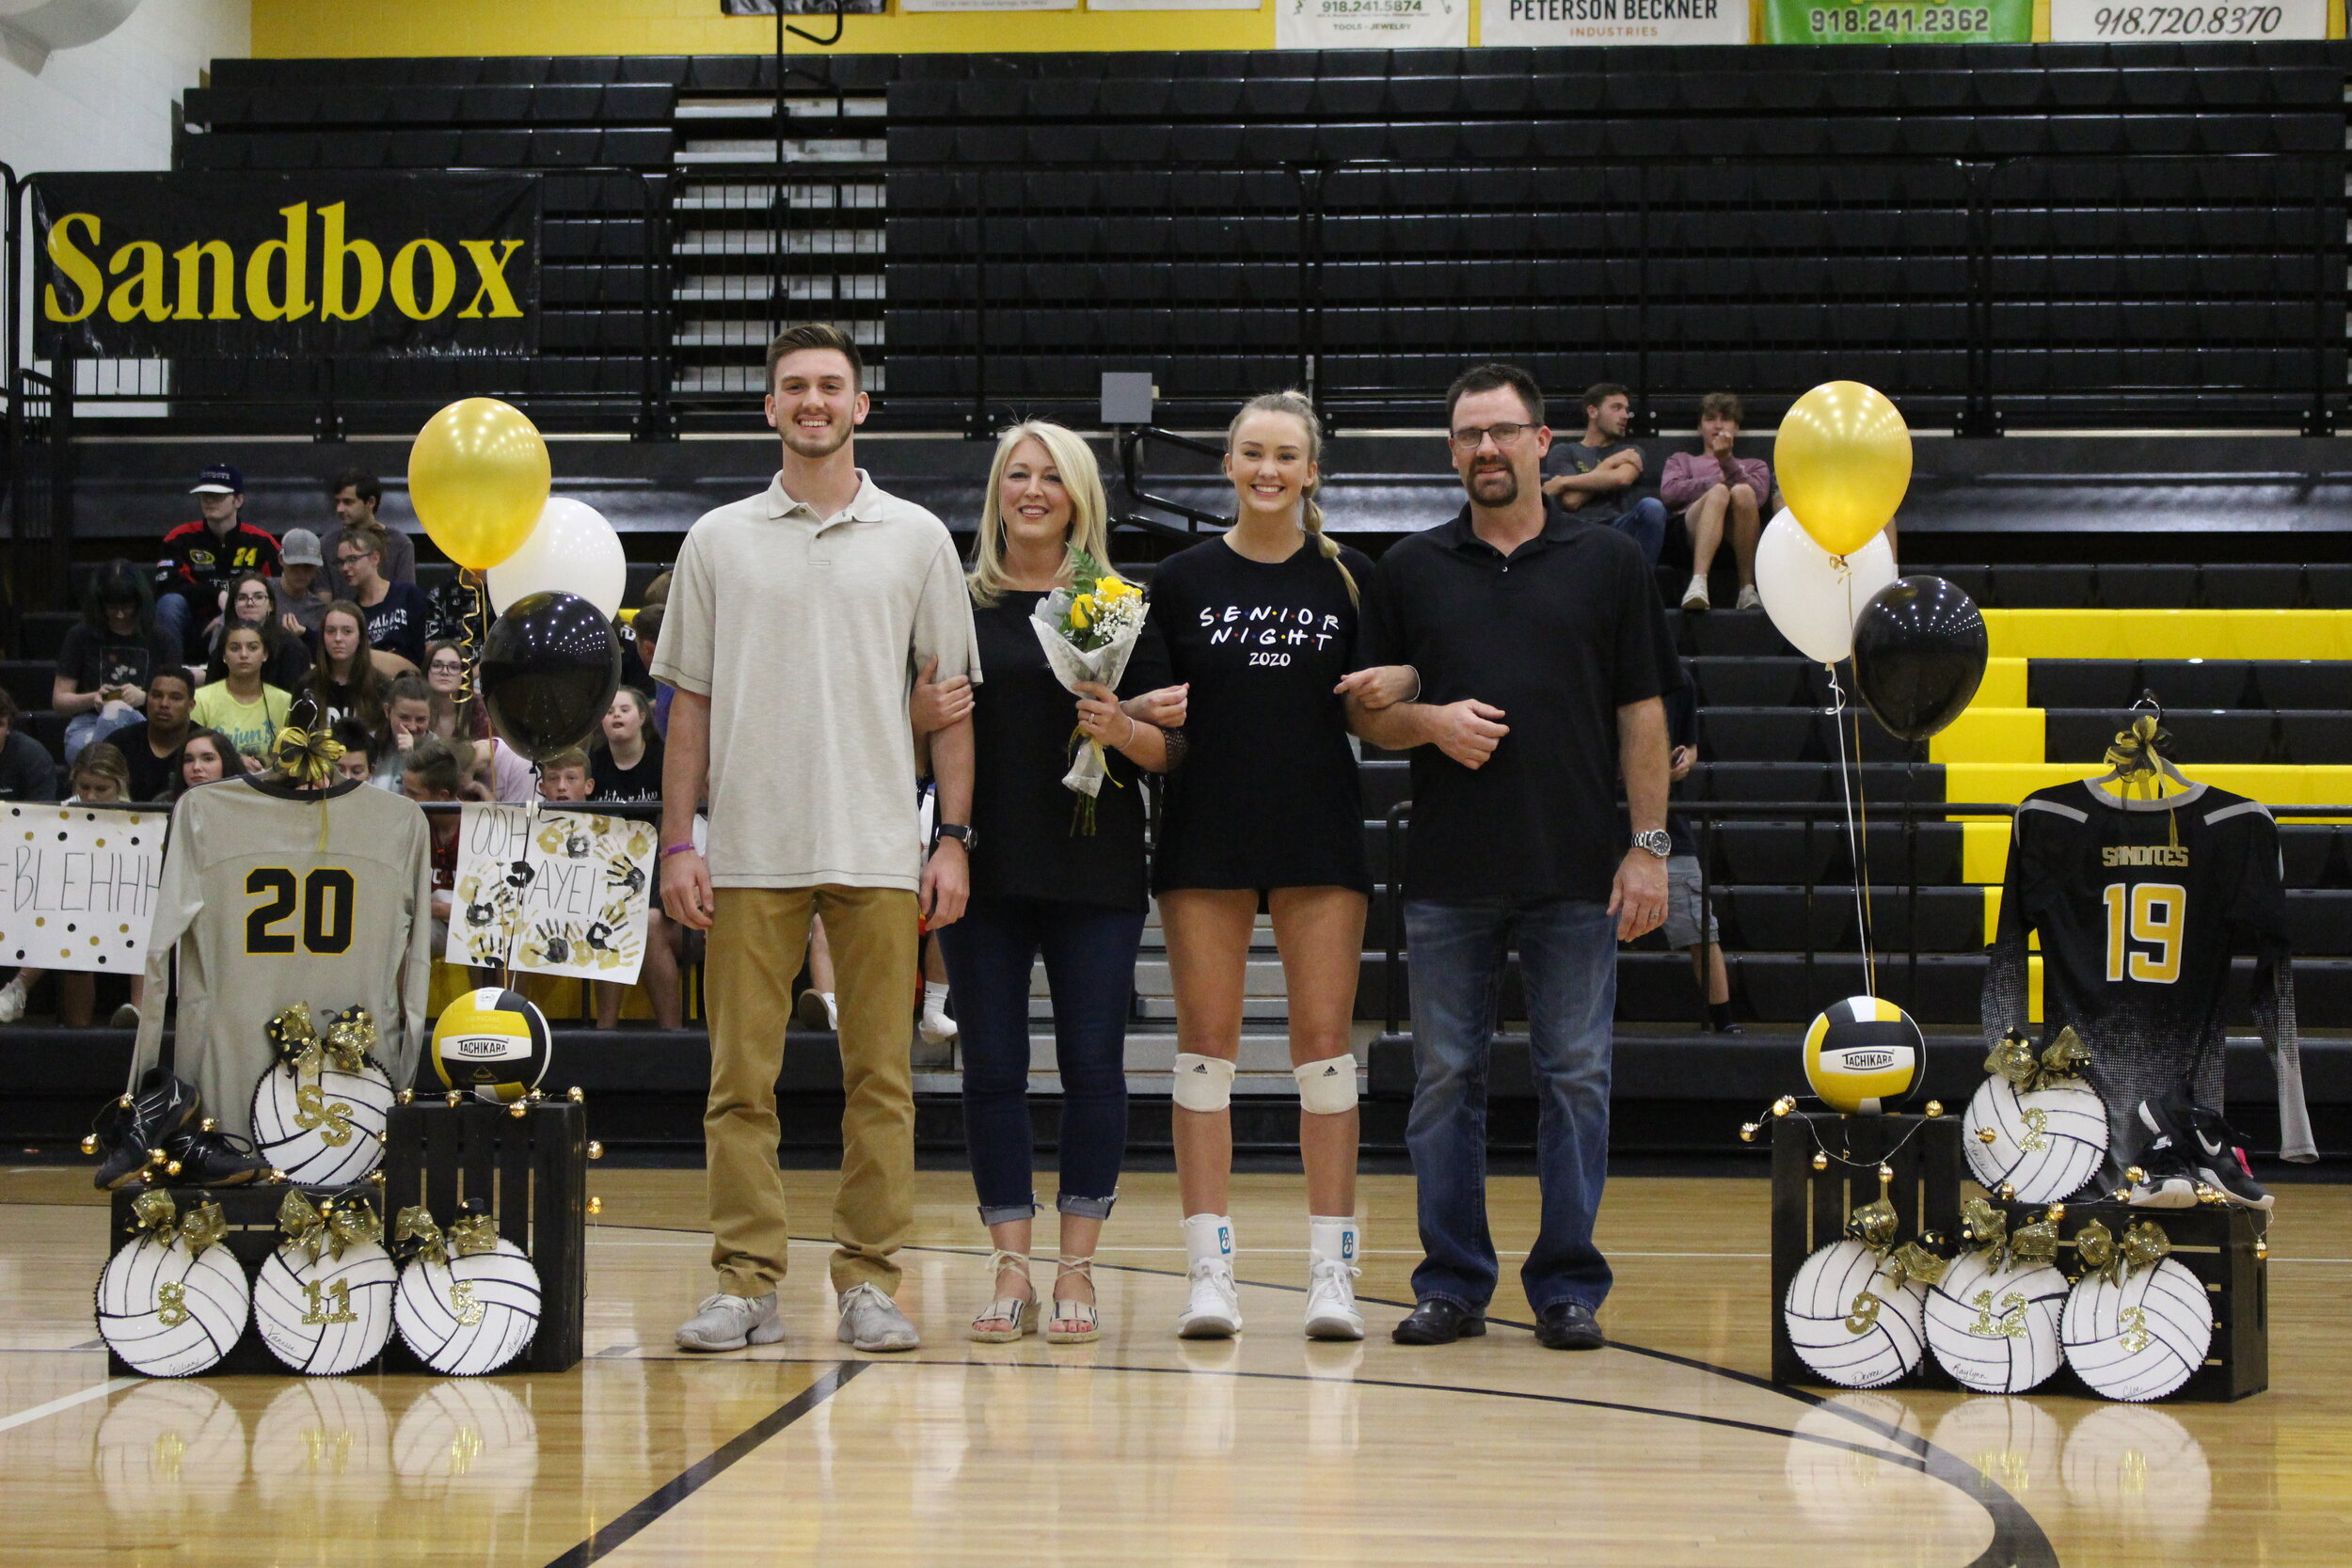 """Devree Youngblood (OSH), escorted by parents Jeff and Dawn Youngblood, and brother Brock Youngblood. She has played Sandite Volleyball for 6 years and will continue her career on a scholarship at Oklahoma Baptist University, where she will major in Marketing. She is involved in National Honor Society and Special Olympics.  Youngblood's favorite volleyball memory is """"when we swept Union at home my freshman year.""""  """"Thank you to my parents for supporting me and giving me the opportunity to play volleyball. I want to thank my Sand Springs coaching staff, Janna Green, Darrell Pearson, ad B-MAG for everything you've taught me. And to my team, high school has been a privilege to play along side of each of you."""""""